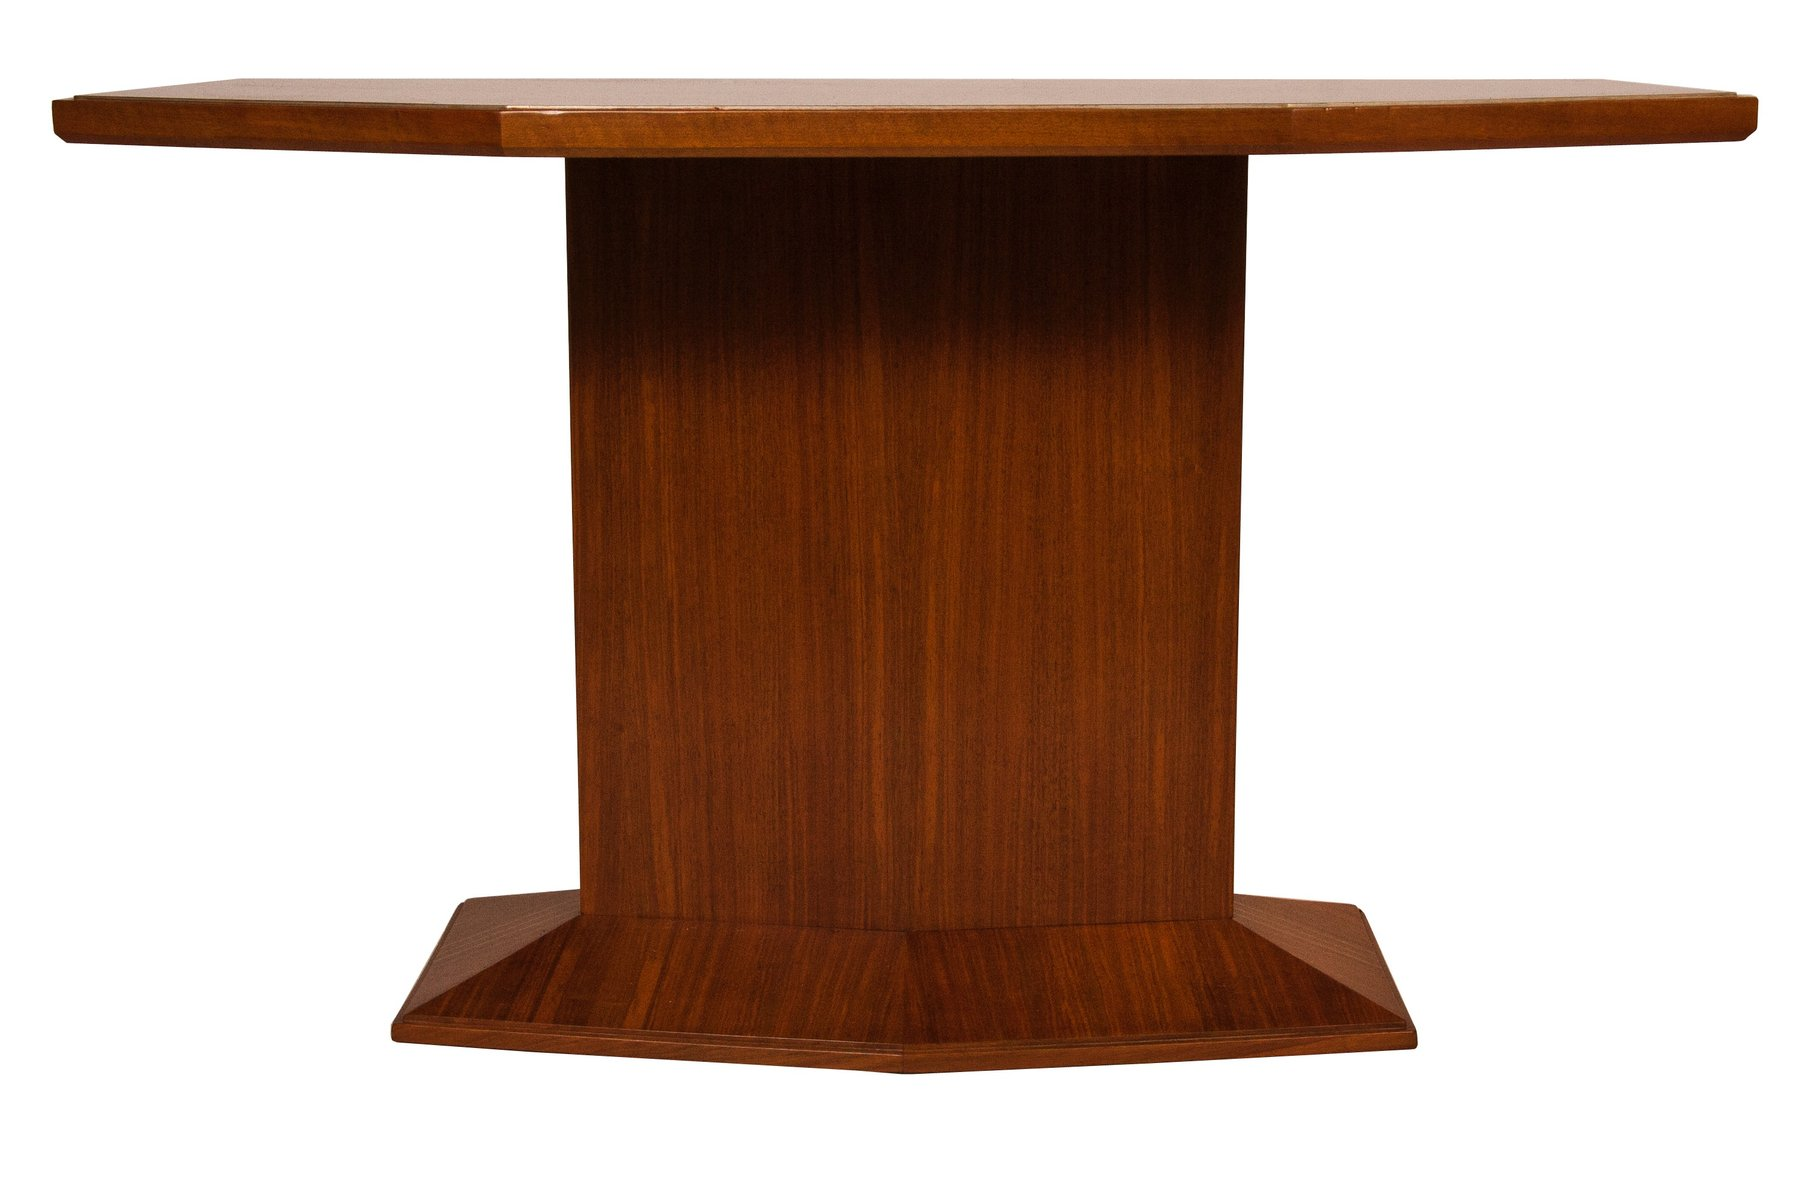 Art deco console table from dominique paris 1920s for sale at pamono geotapseo Image collections